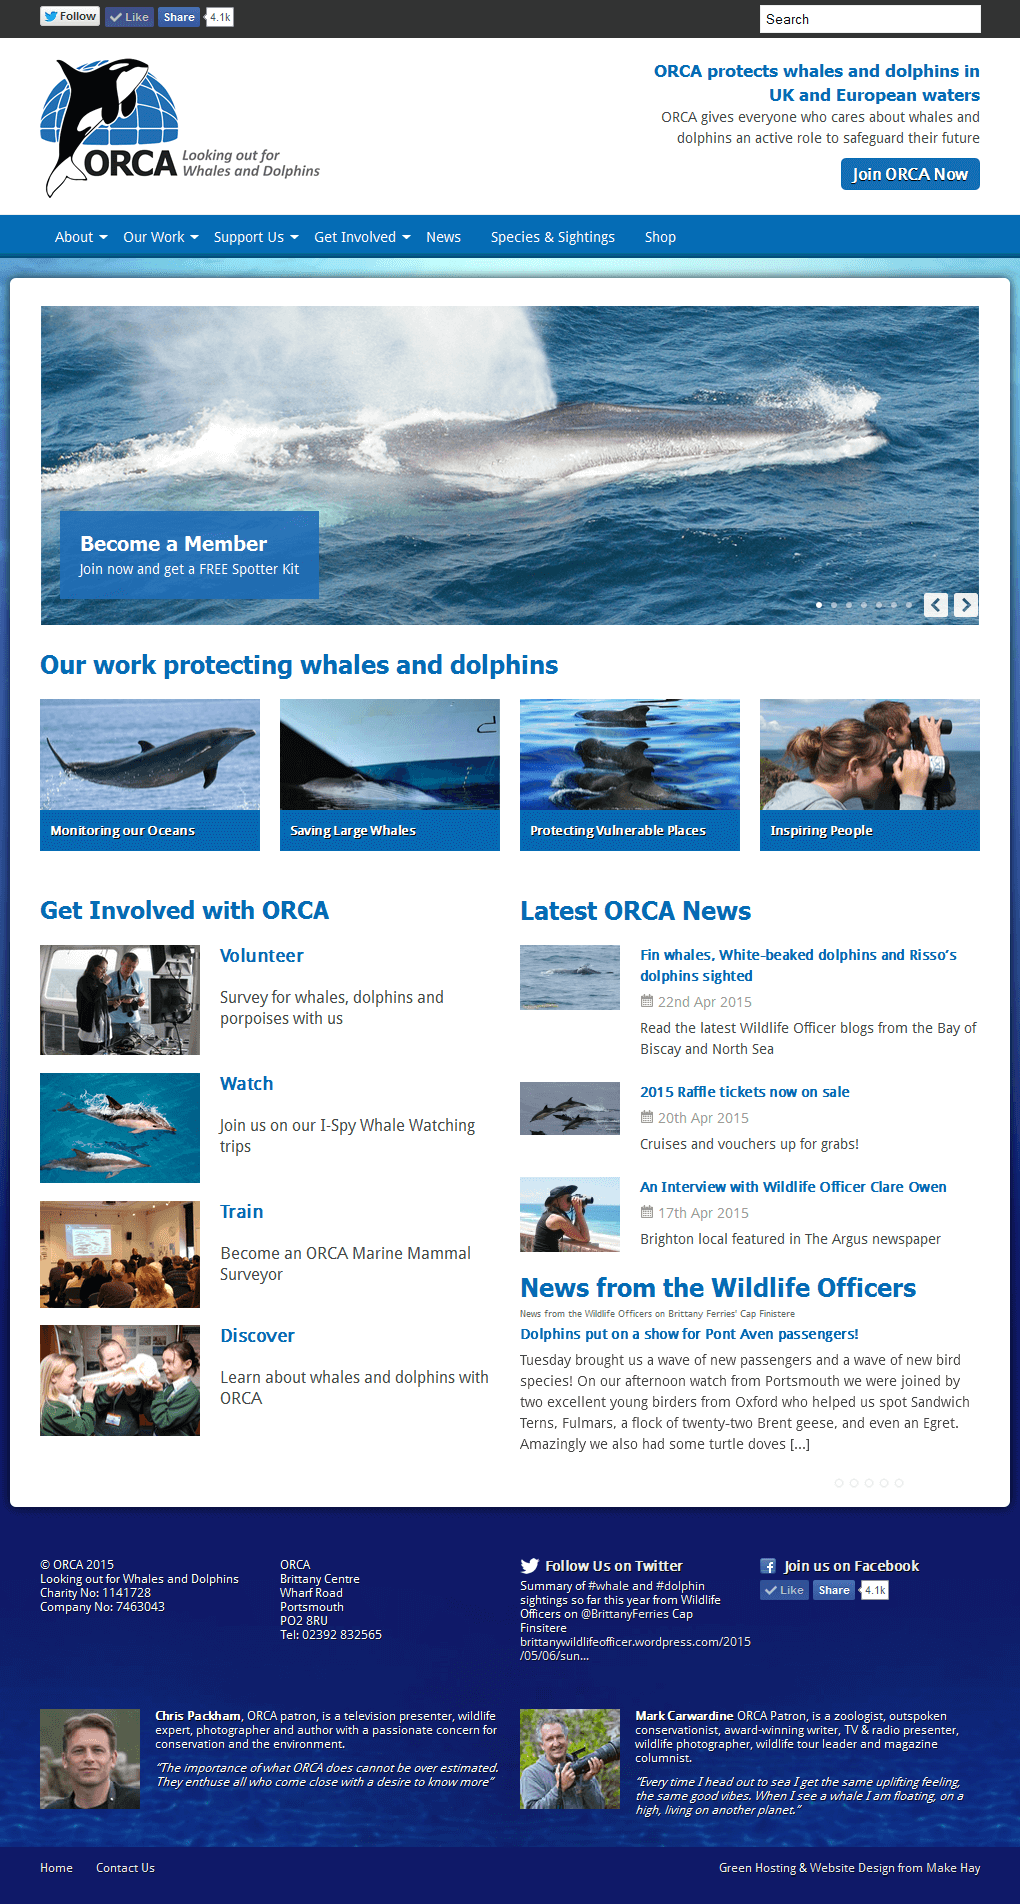 ORCA - Protecting Whales and Dolphins ORCA home page